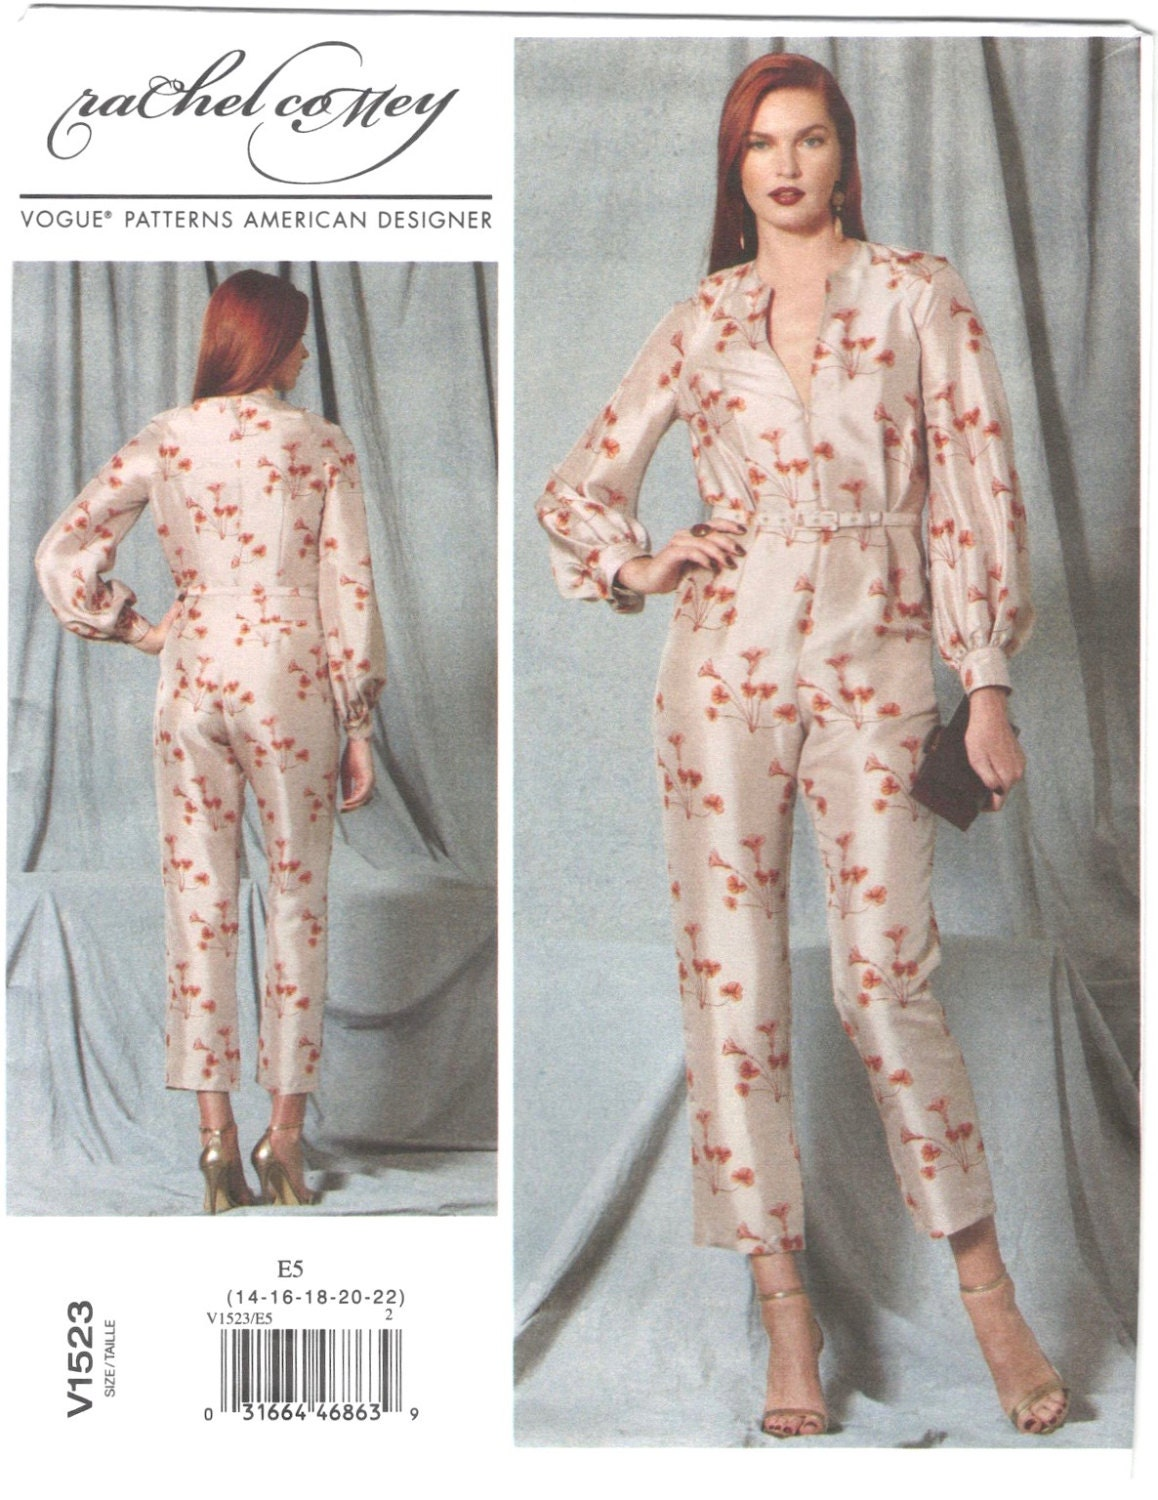 Rachel Comey Silt jumpsuit pattern Vogue 1523